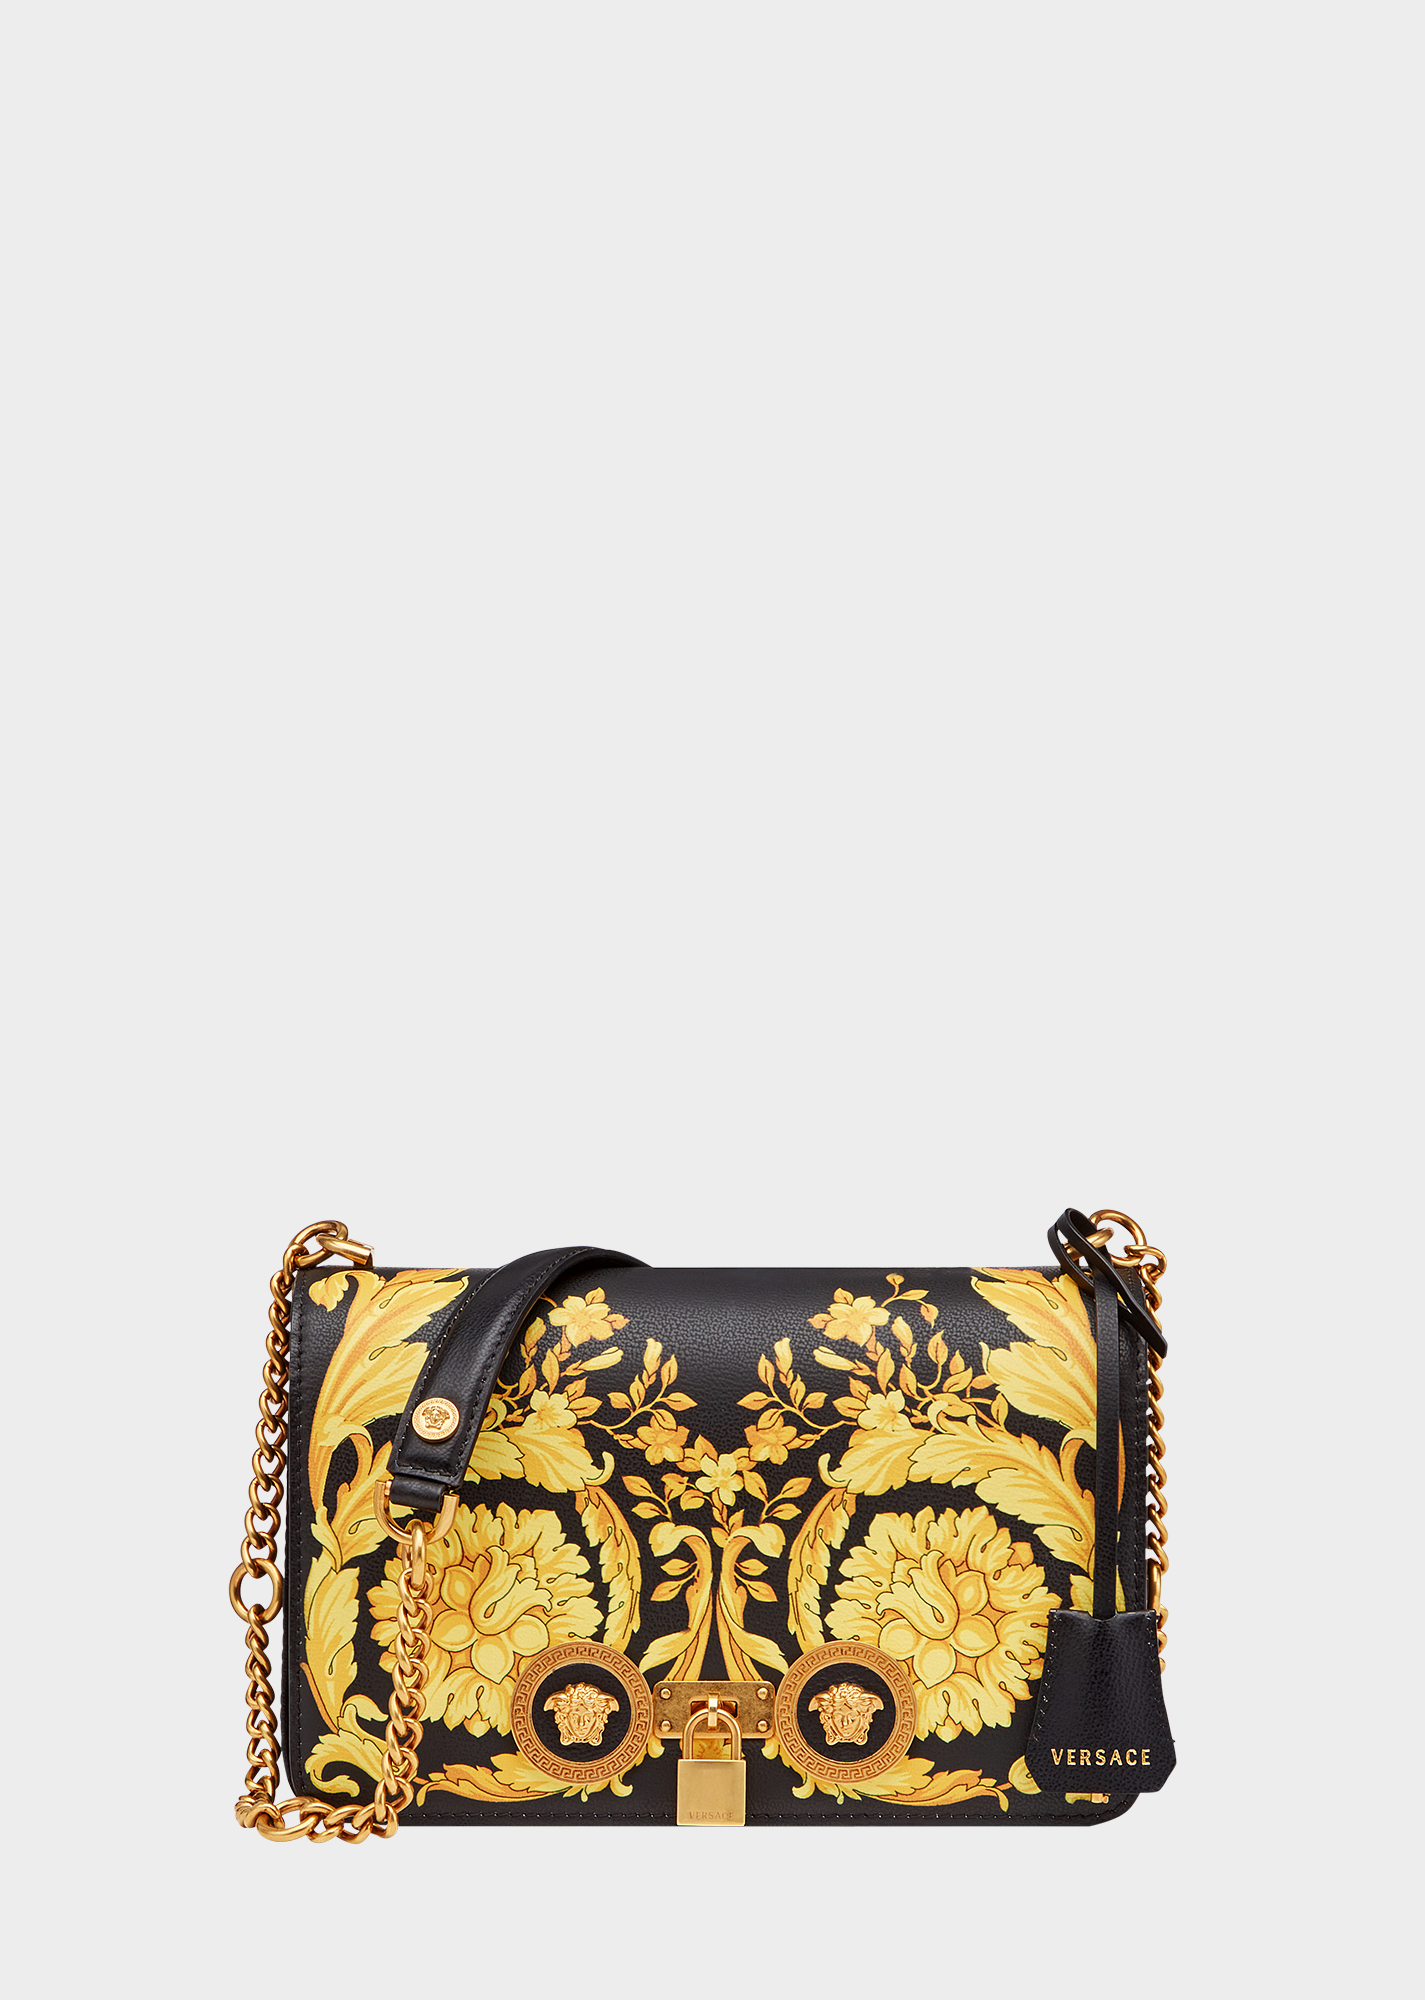 a0da8709c2 Medium Barocco Icon Shoulder Bag | Luxury Bags & Luggage | Versace ...